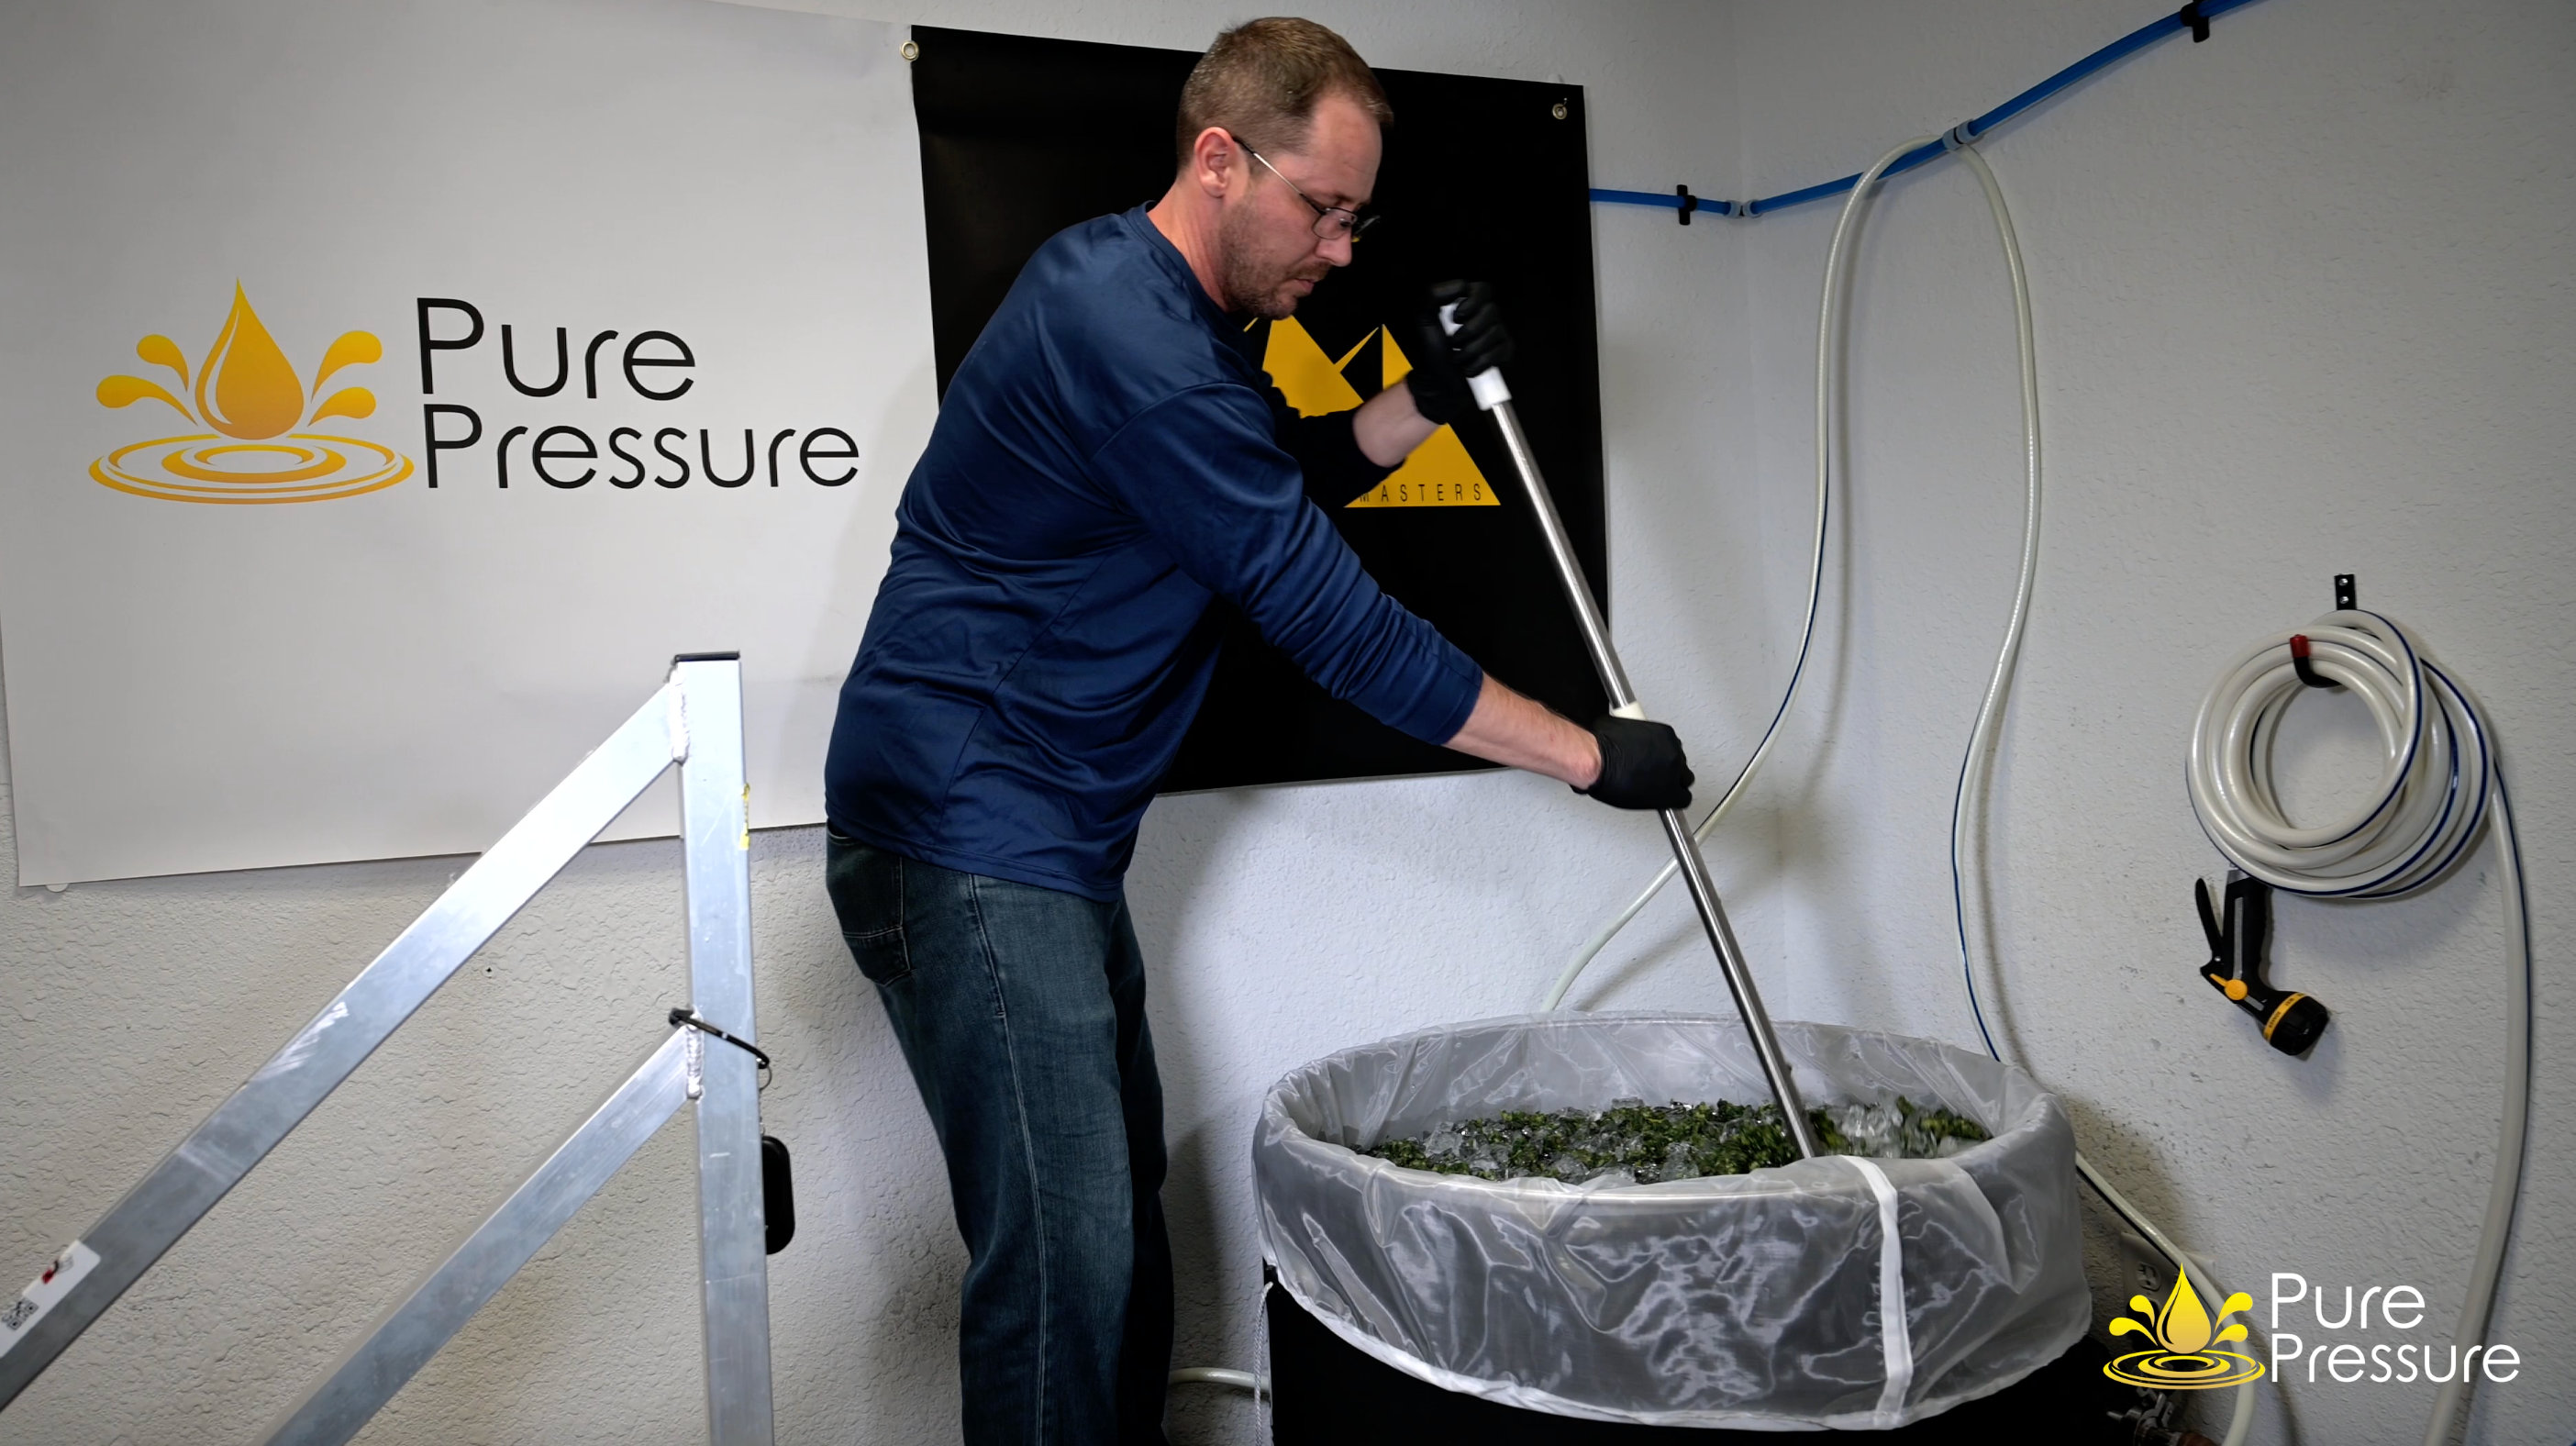 Eric Simpson hand paddling in a PurePressure Bruteless vessel at the Kush Masters facility.